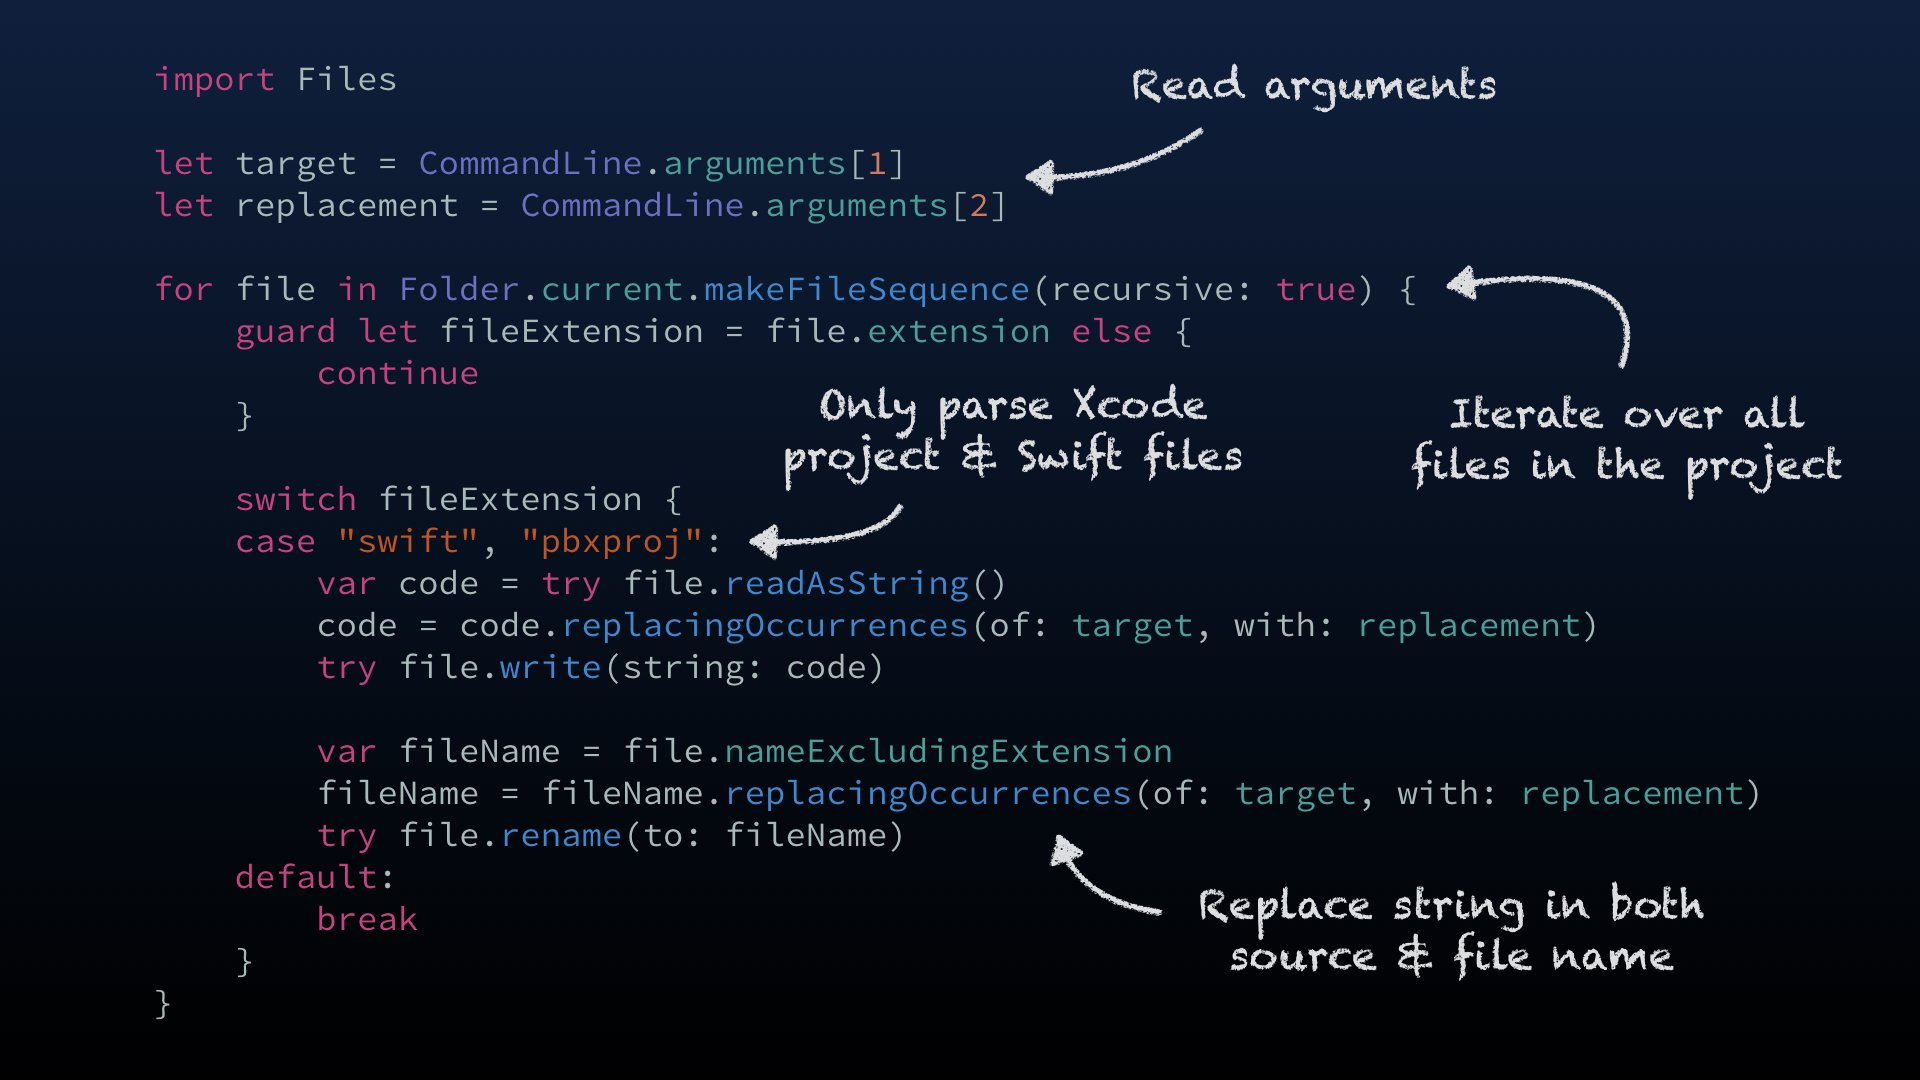 """John Sundell on Twitter: """"Replace the """"Can't refactor Swift code"""" dialog in  Xcode with a simple renaming Swift script in 4 easy steps! 😀  https://t.co/a37AOHMOof… https://t.co/0OlgK0rKss"""""""